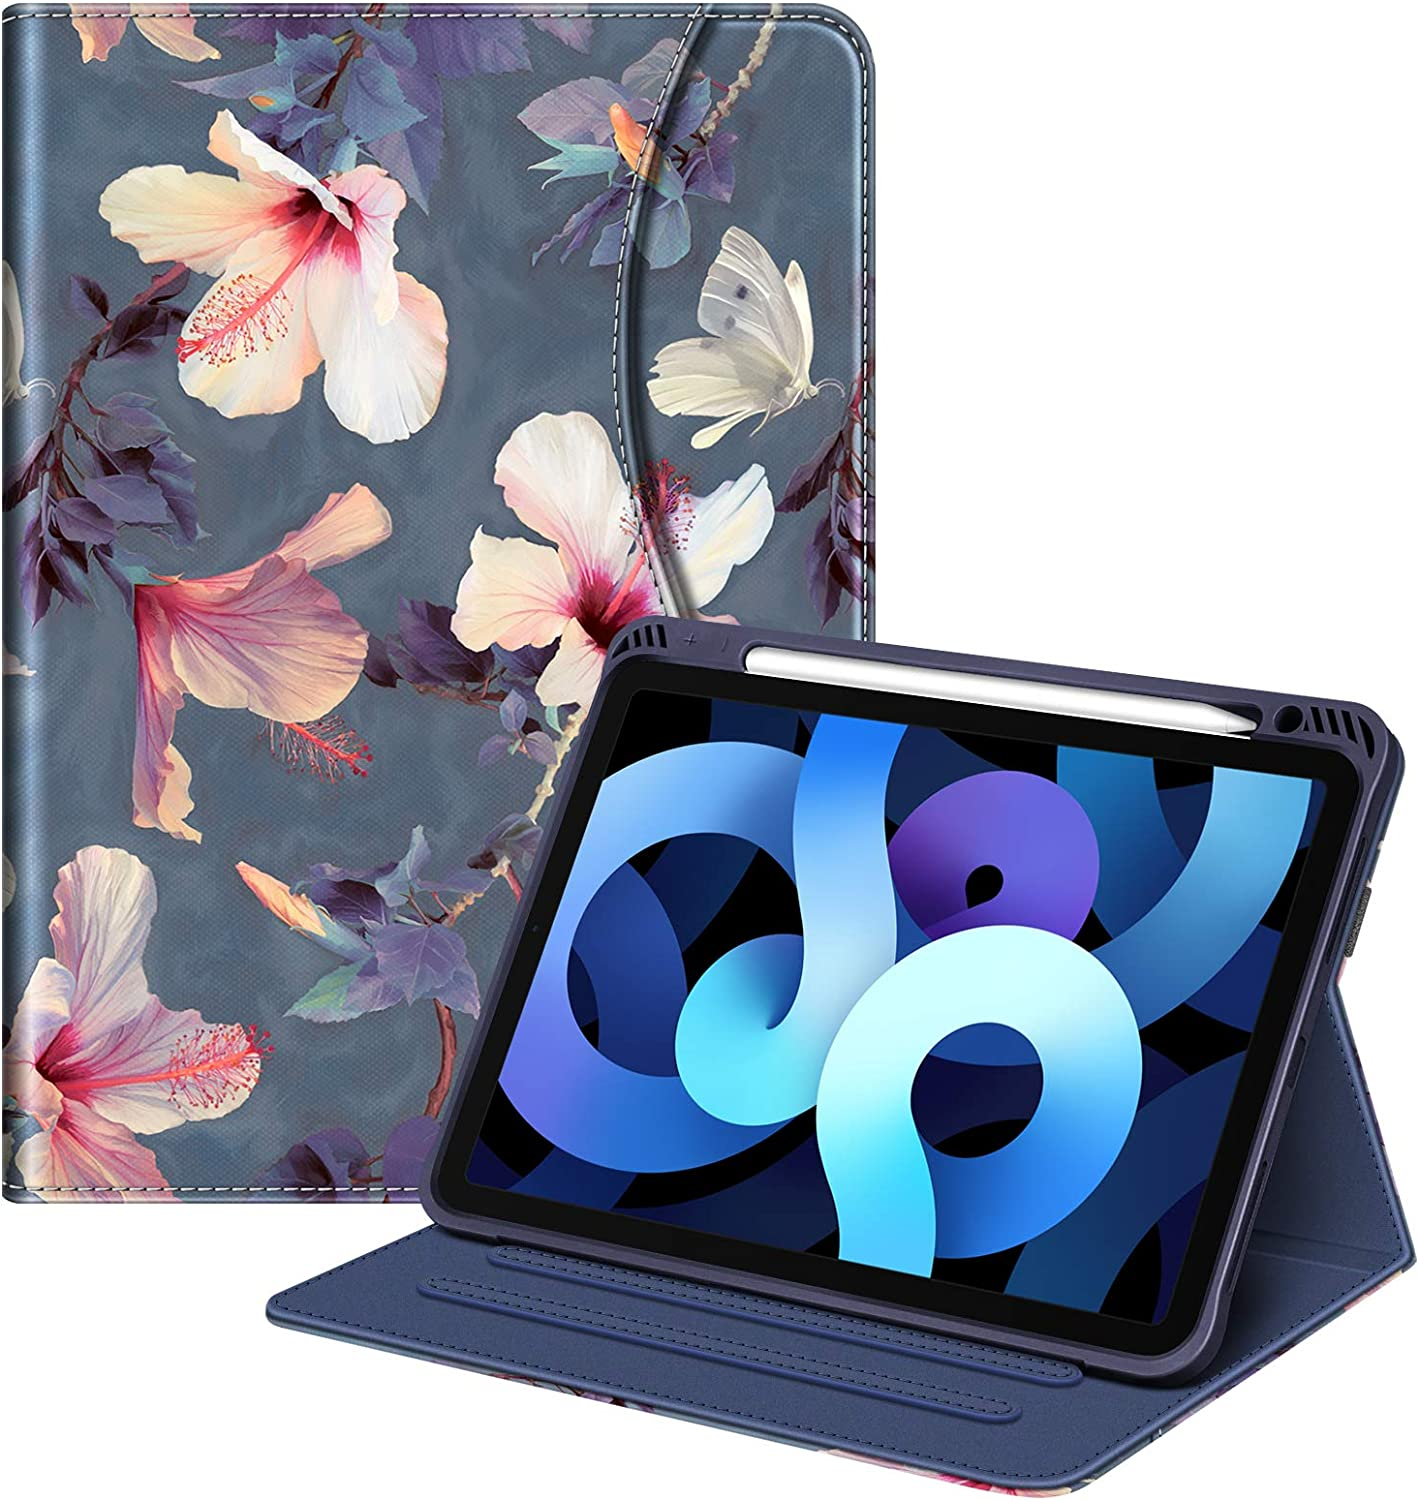 Fintie Folio Case for iPad Air 4th Generation 2020 - [Supports Pencil 2nd Gen Charging] Multi-Angle Viewing Soft TPU Stand Back Cover with Pocket & Pencil Holder, Auto Wake/Sleep, Blooming Hibiscus